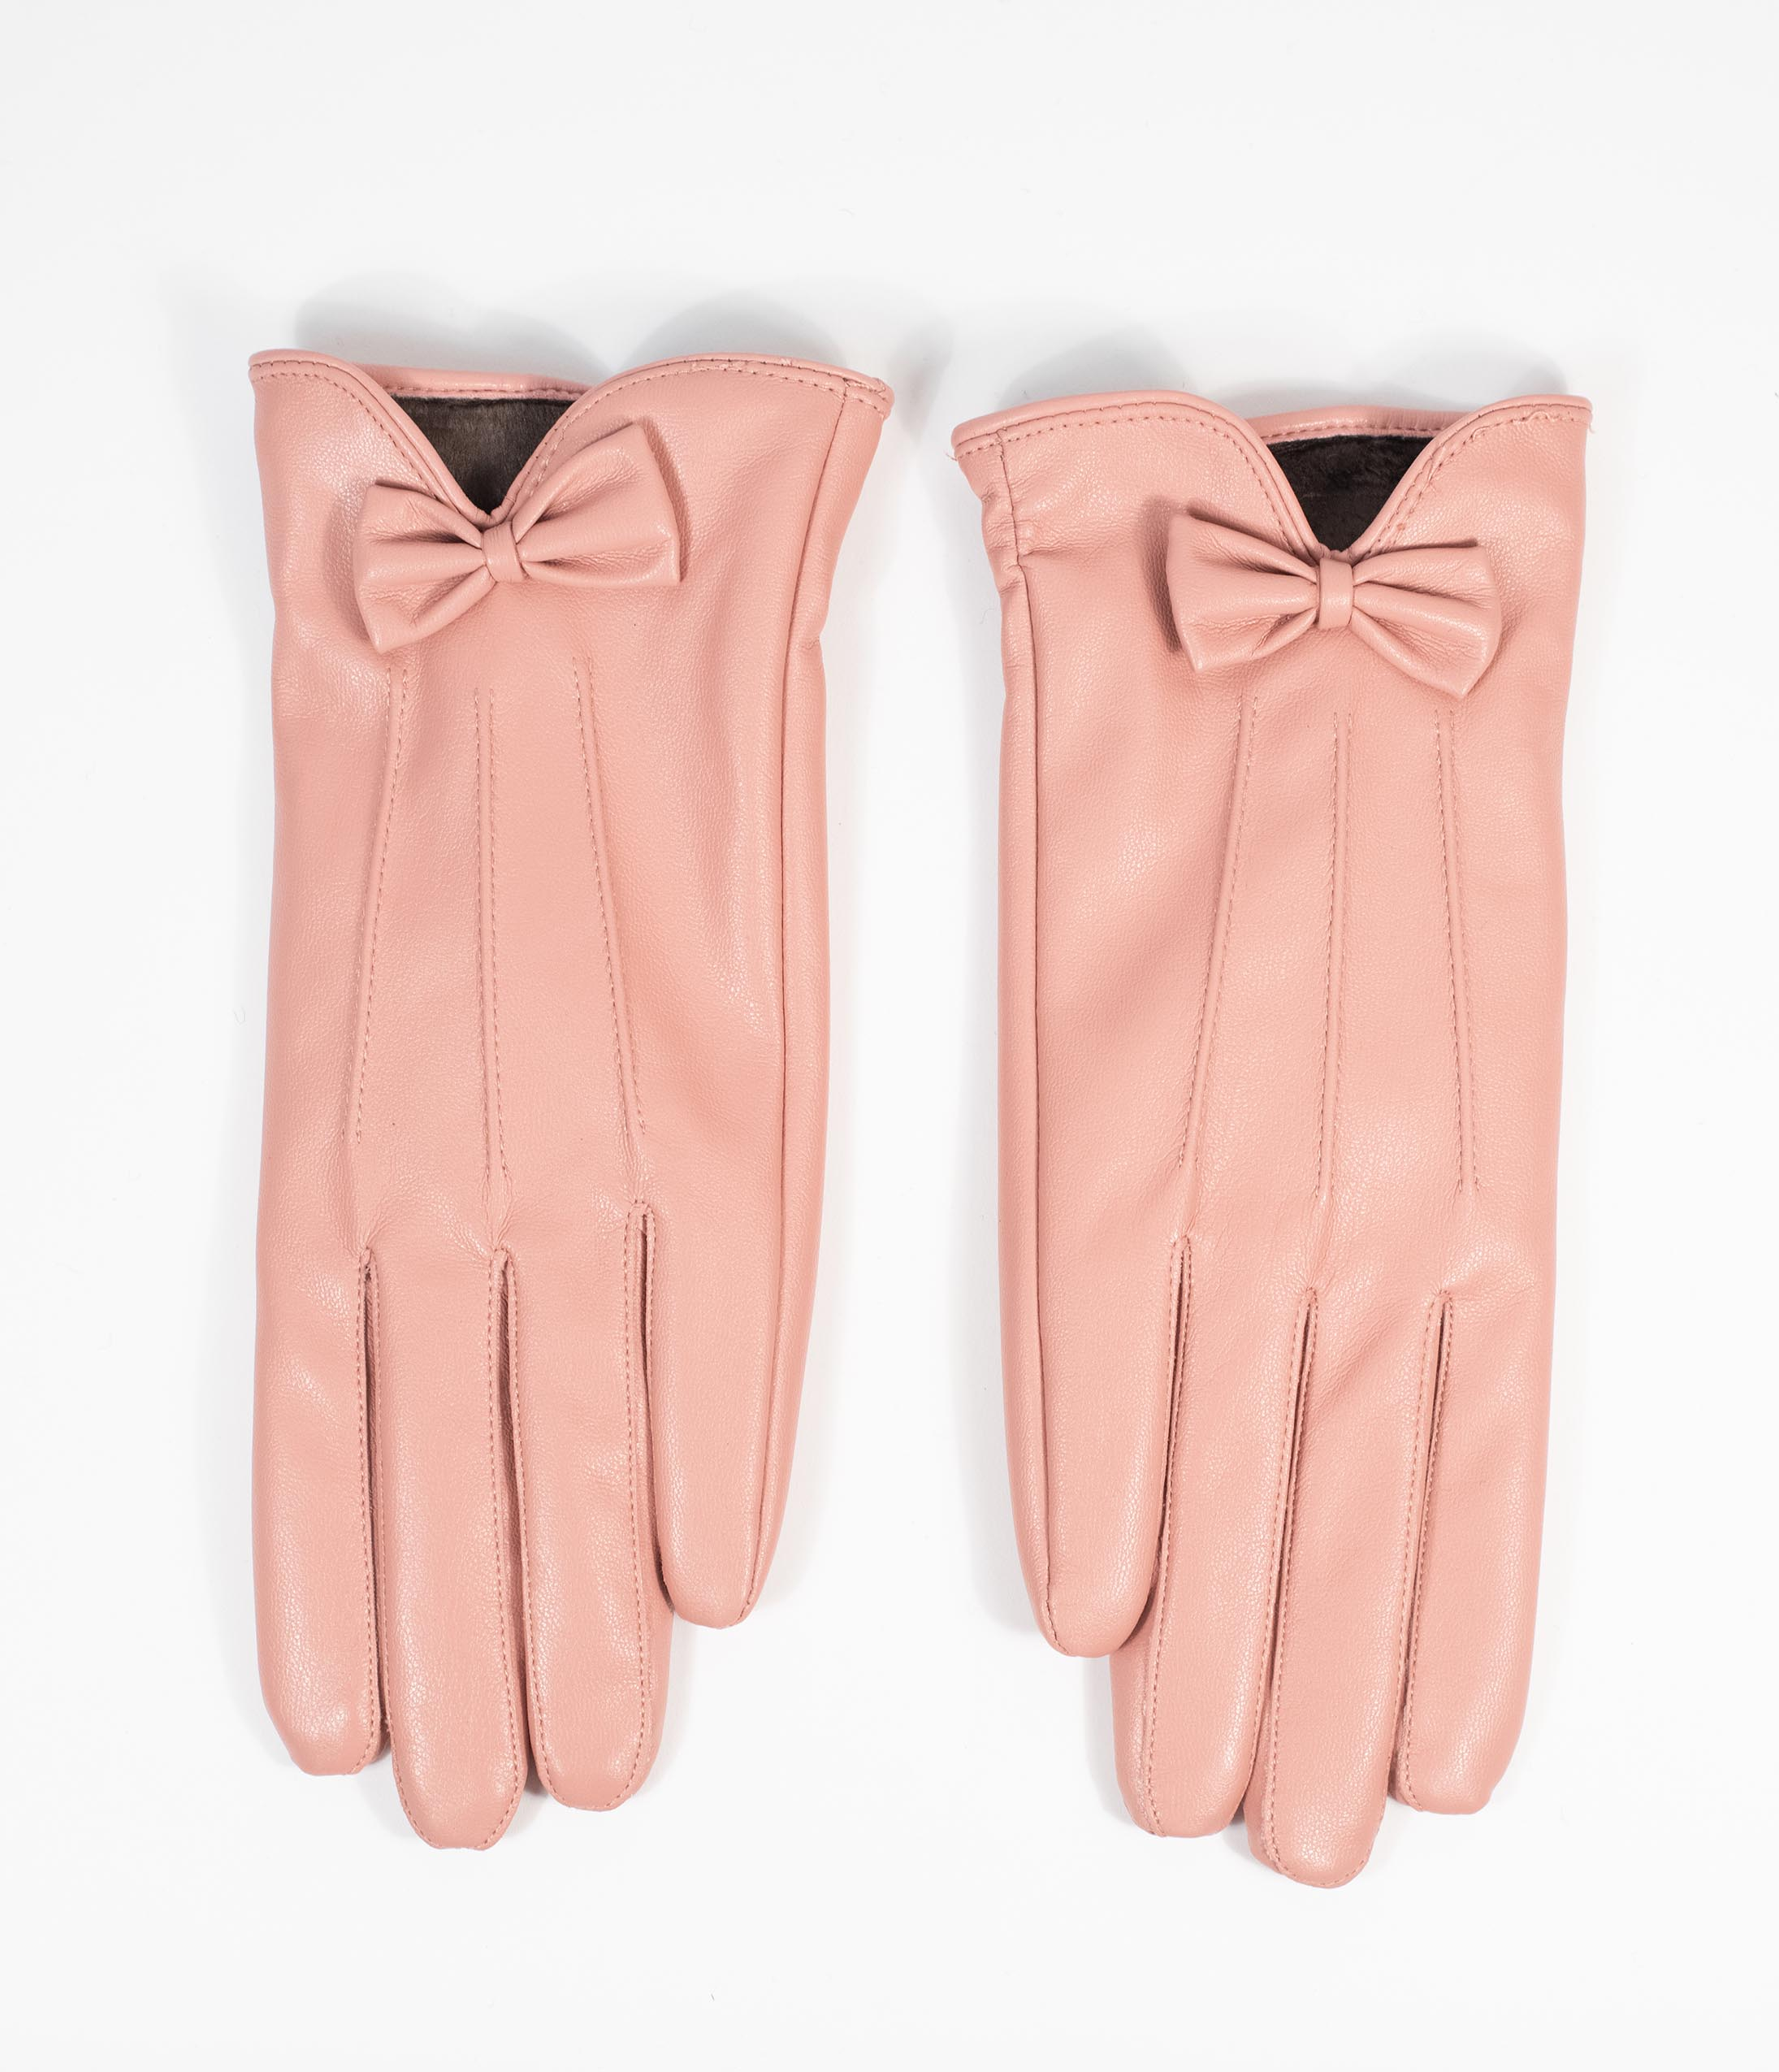 Vintage Style Gloves- Long, Wrist, Evening, Day, Leather, Lace Unique Vintage Light Pink Leatherette Bow Wrist Gloves $24.00 AT vintagedancer.com